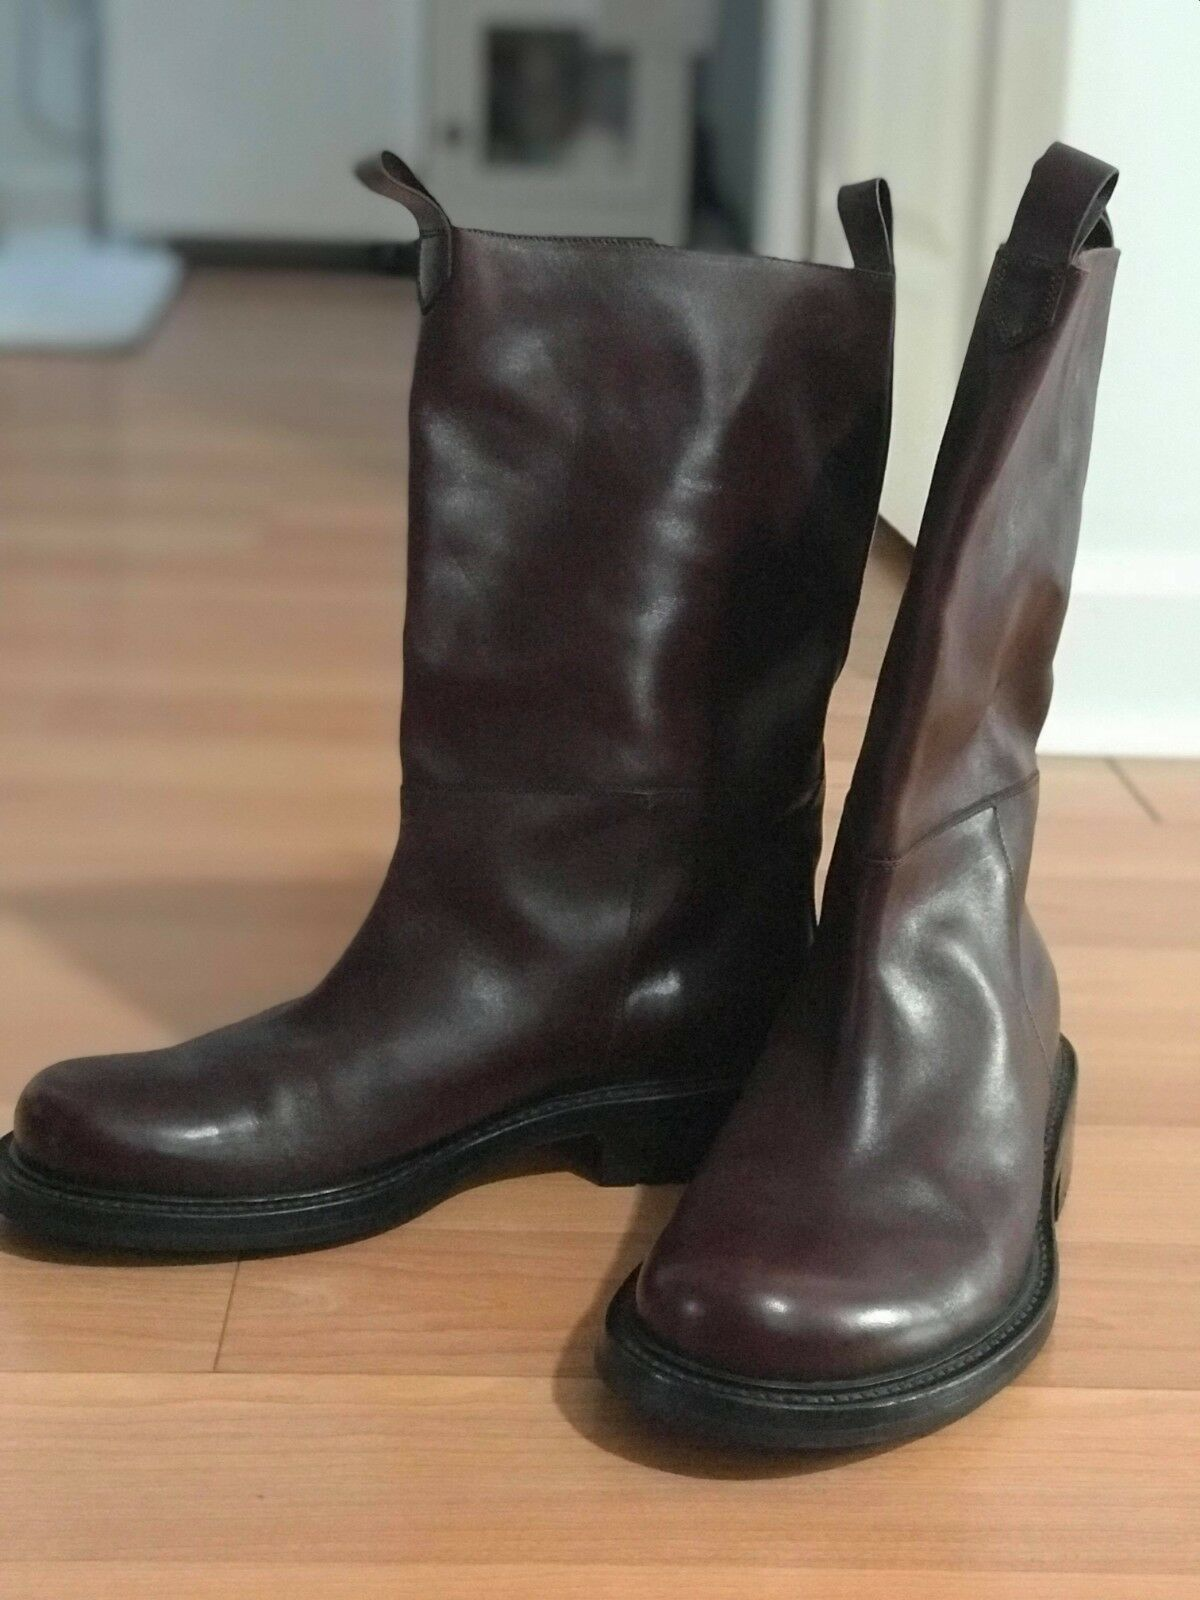 BALLY NEW BOOTS, Made in ITALY, Men, Dark Brown, US Size 9, EU Size 8